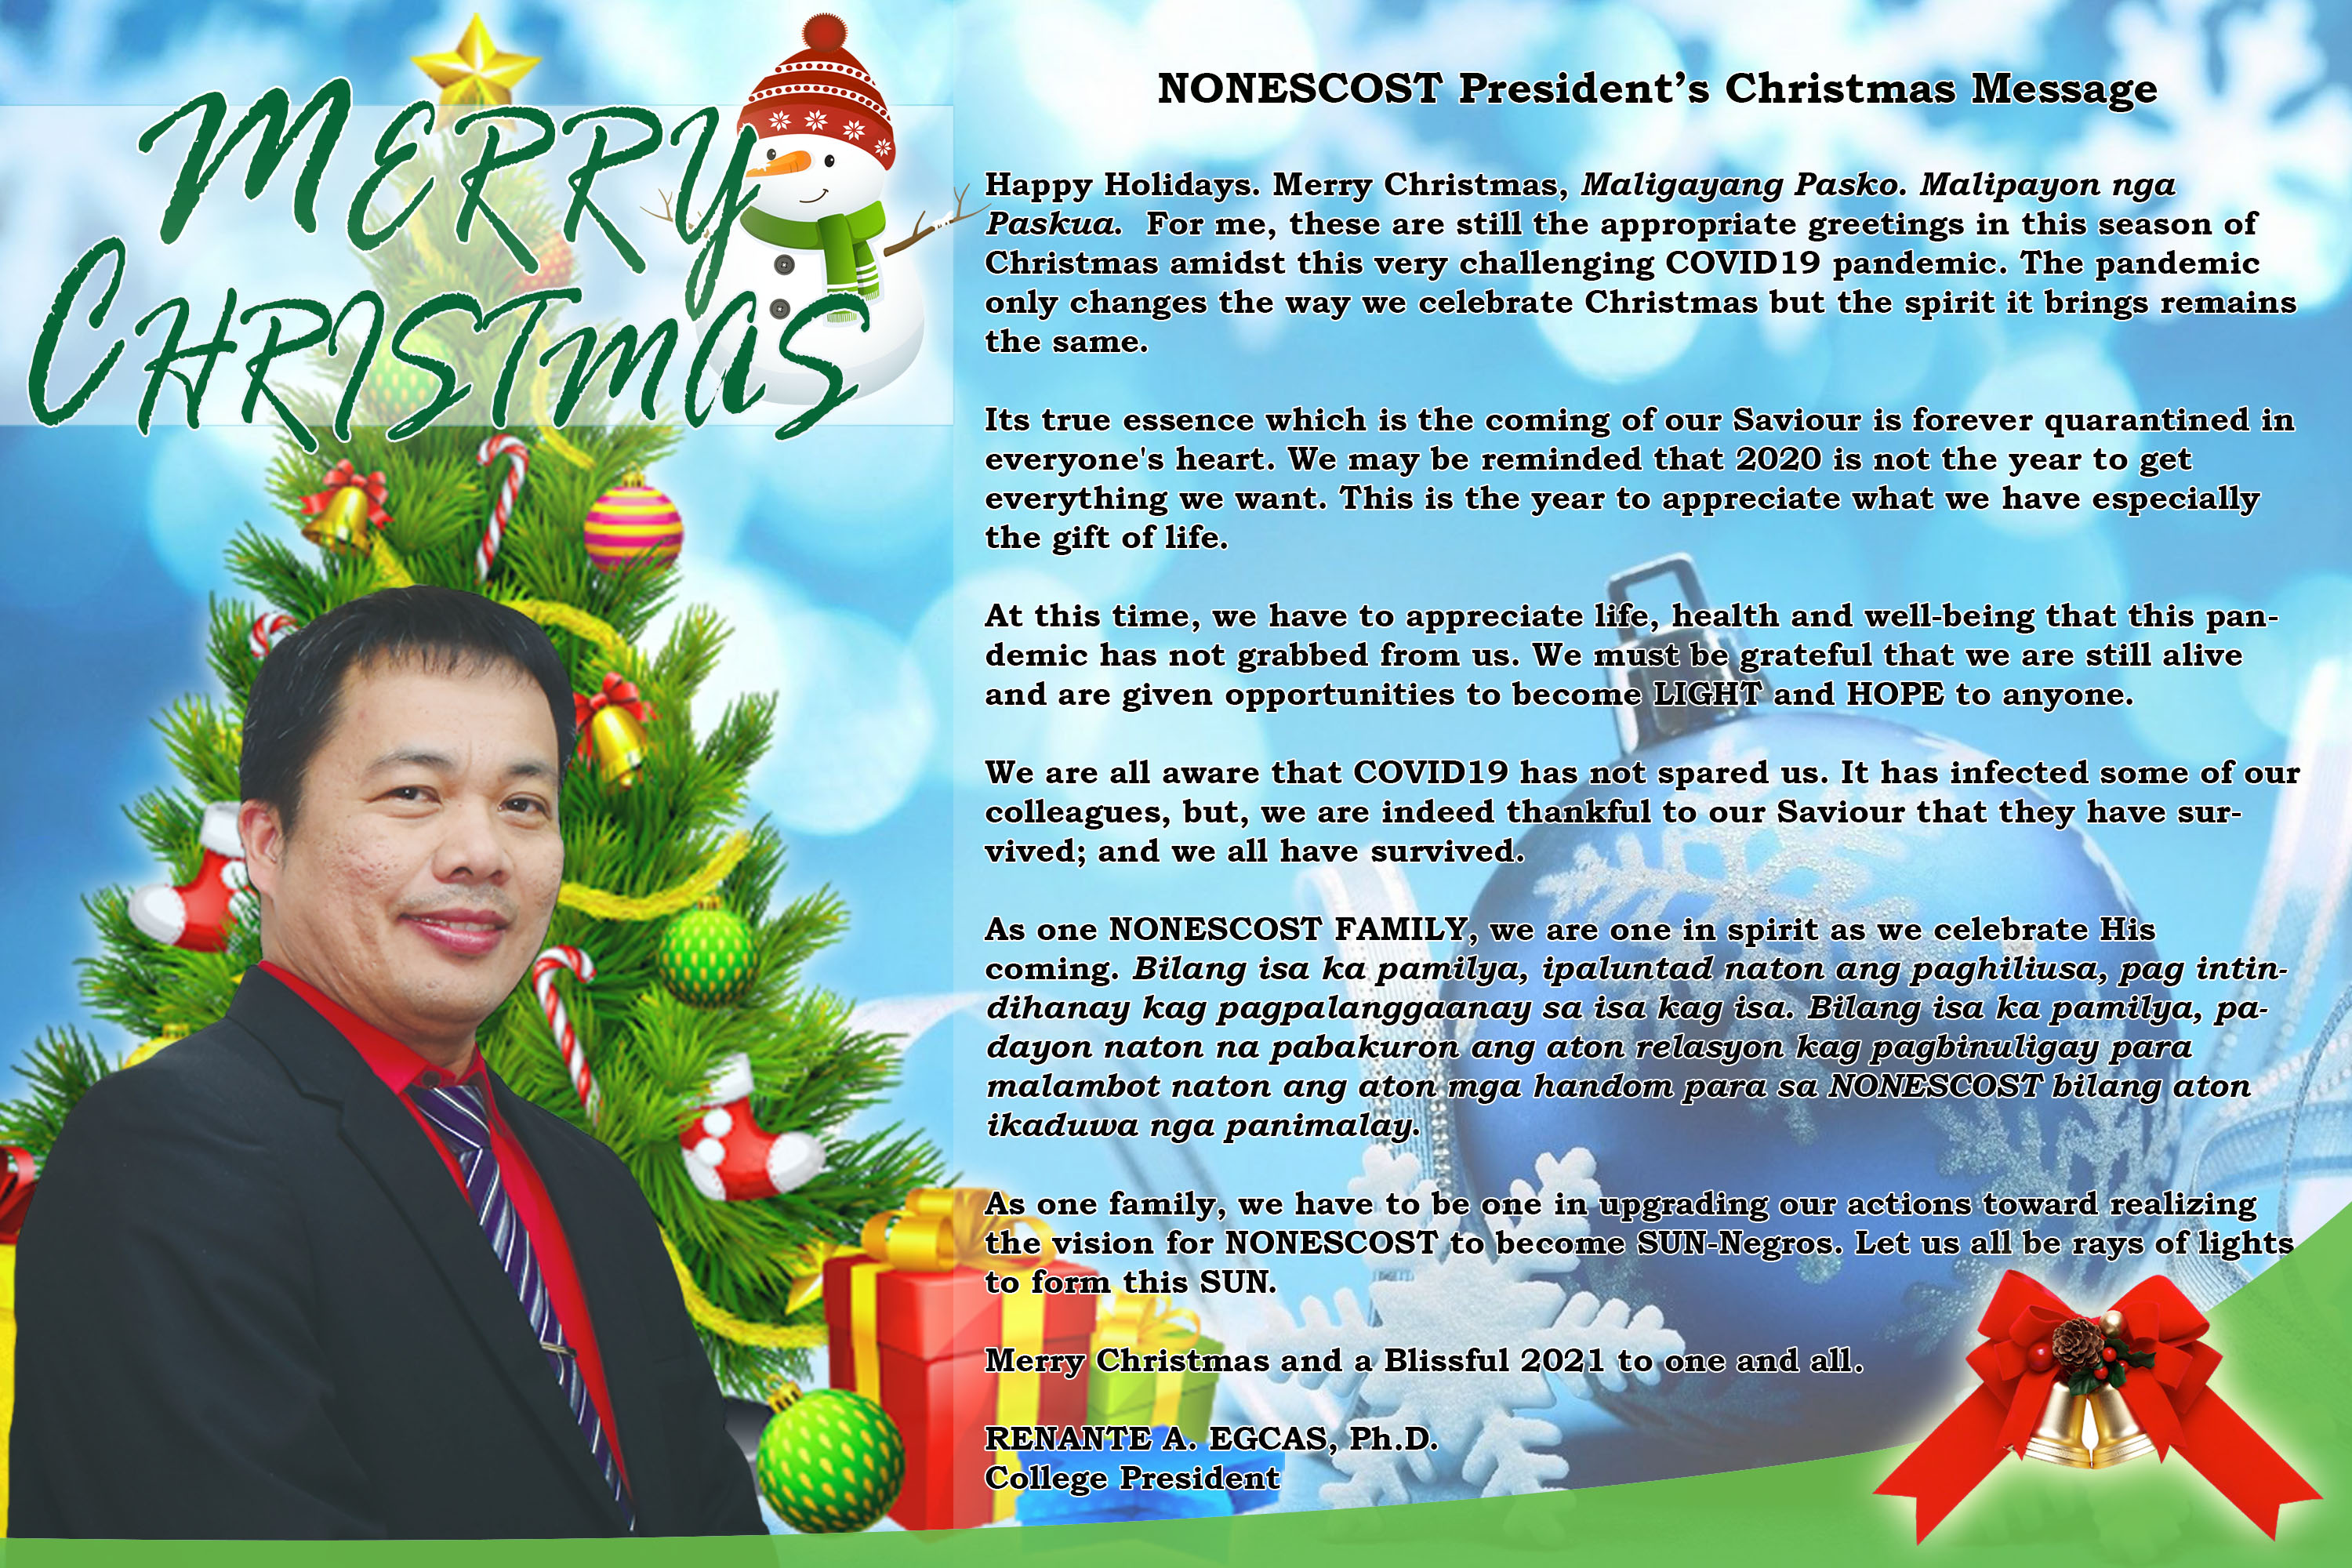 Christmas Greetings from the College President